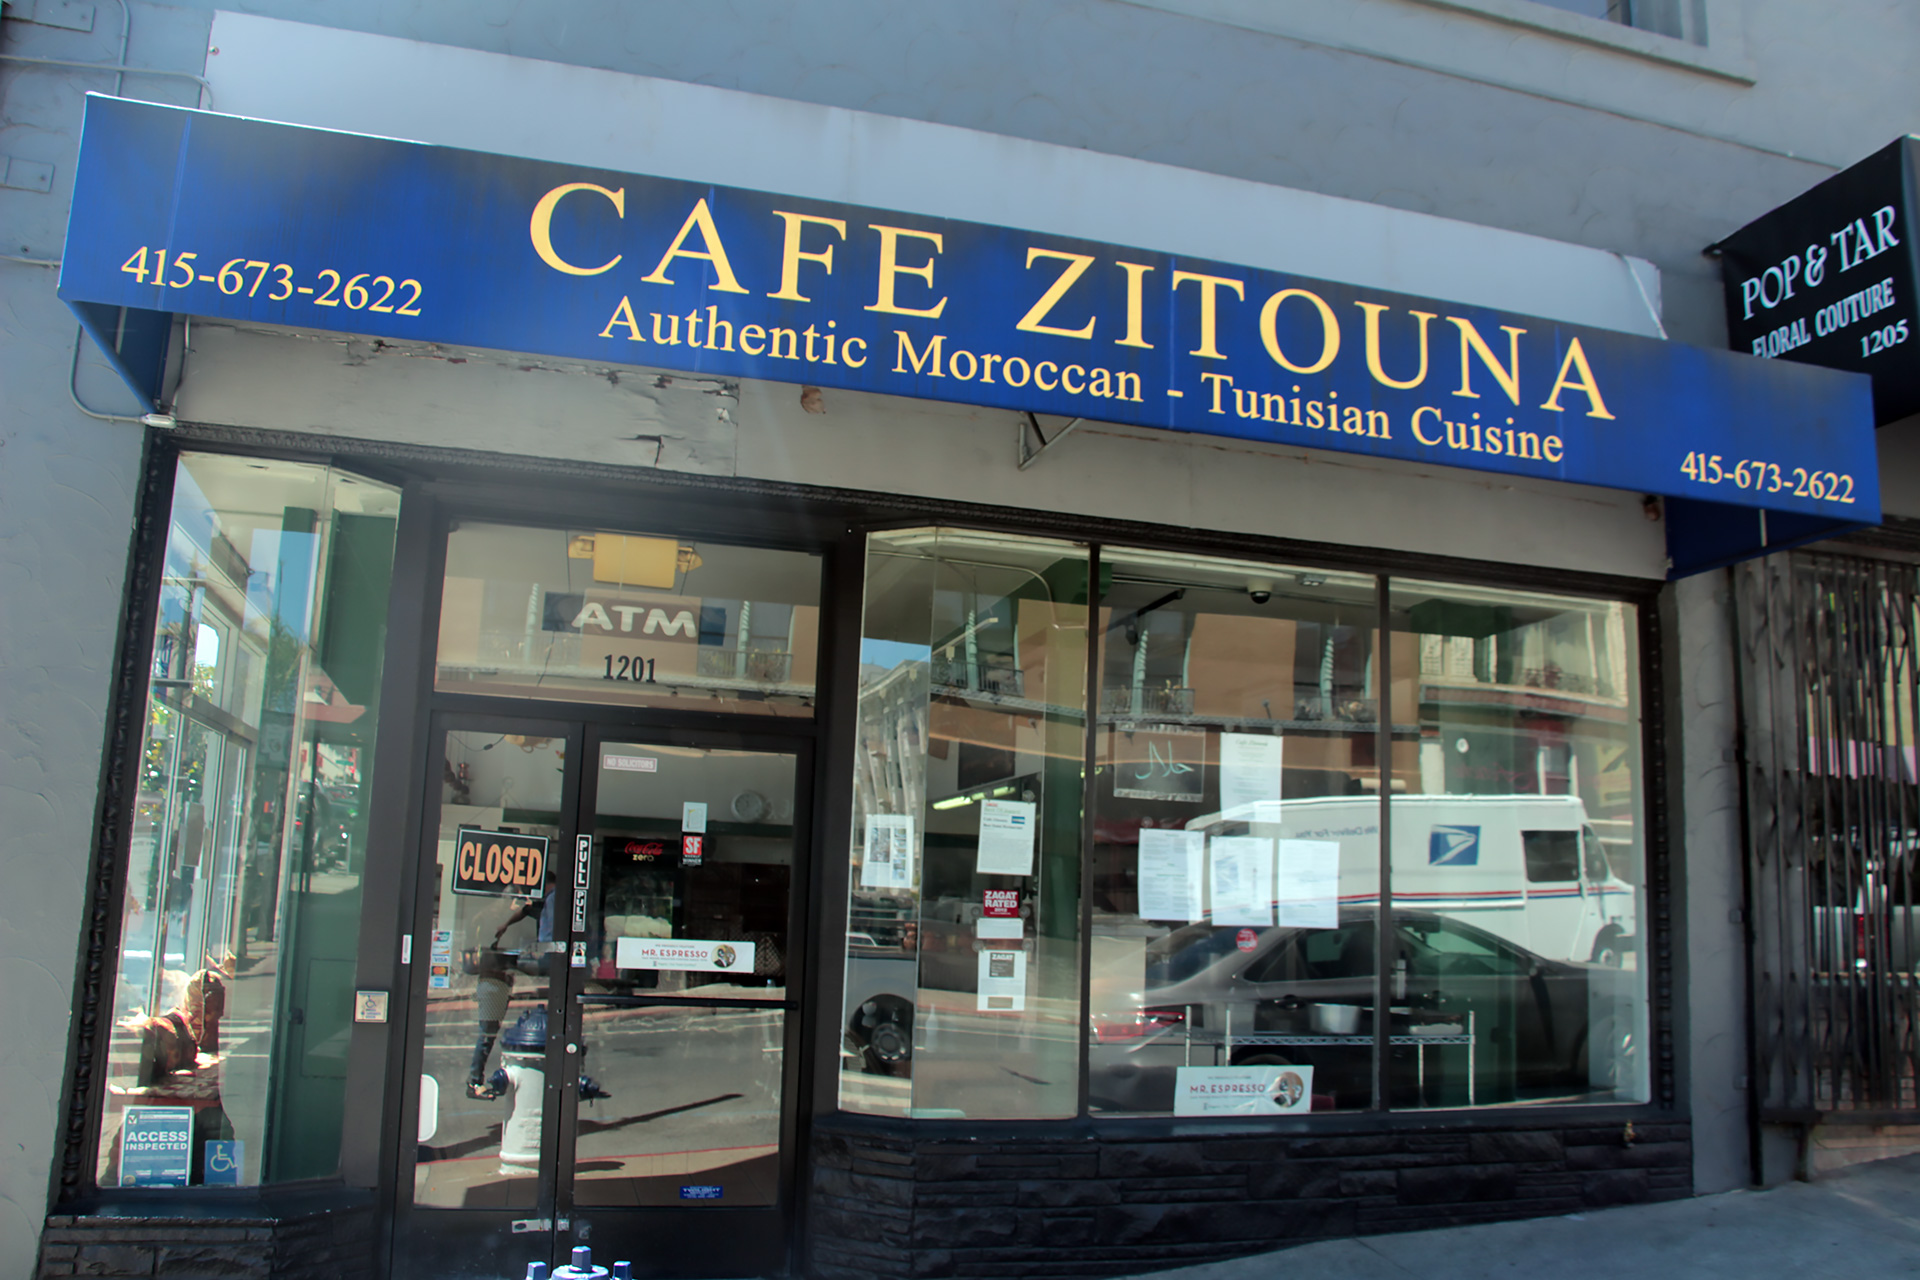 Cafe Zitouna in San Francisco's Lower Nob Hill.